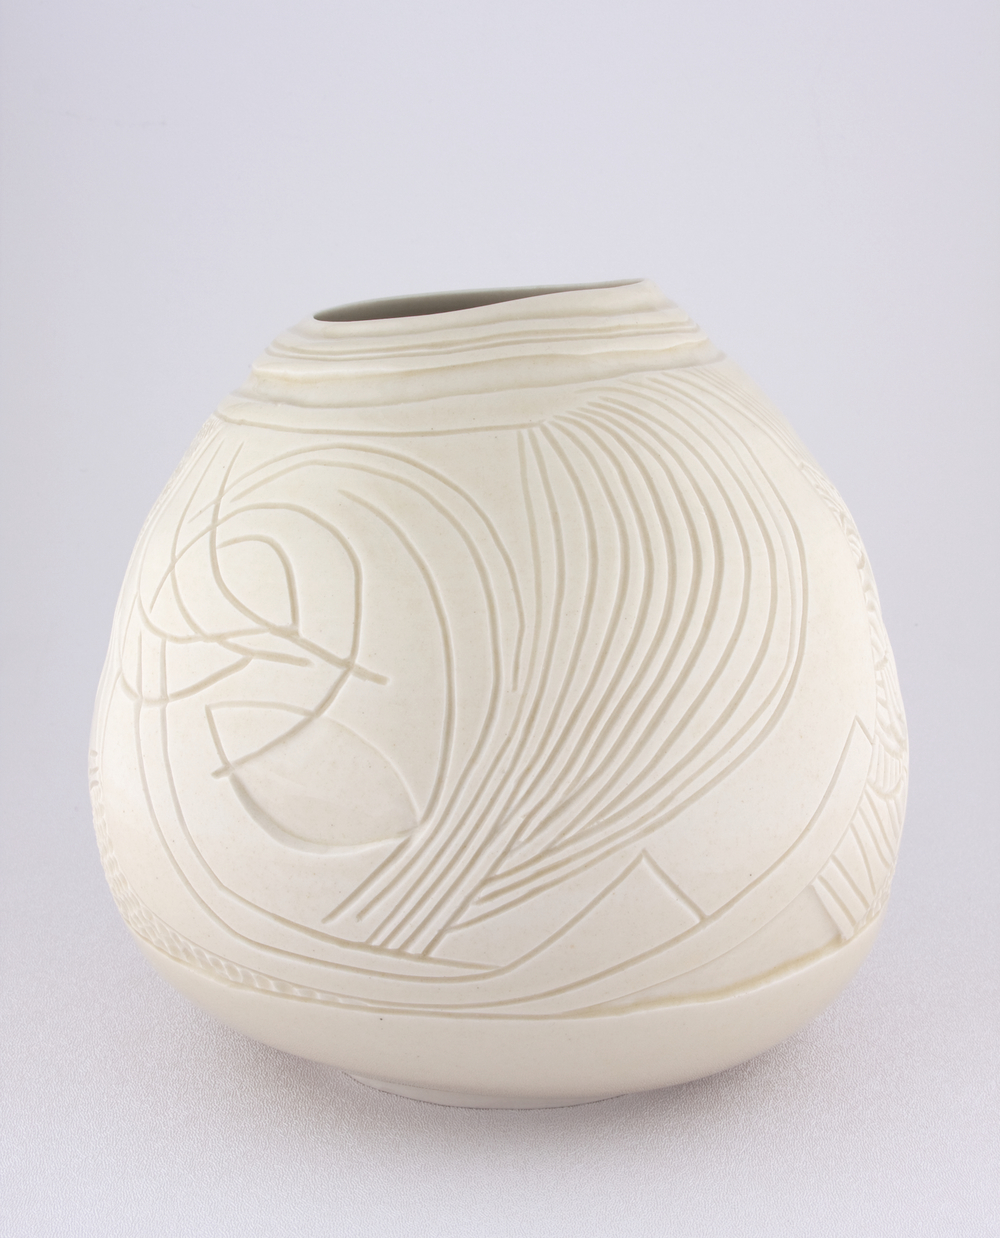 Shio Kusaka  Untitled (freestyle 2)  2008 Porcelain 7 ½h x 7 ¼w x 7 ¼d in SK047